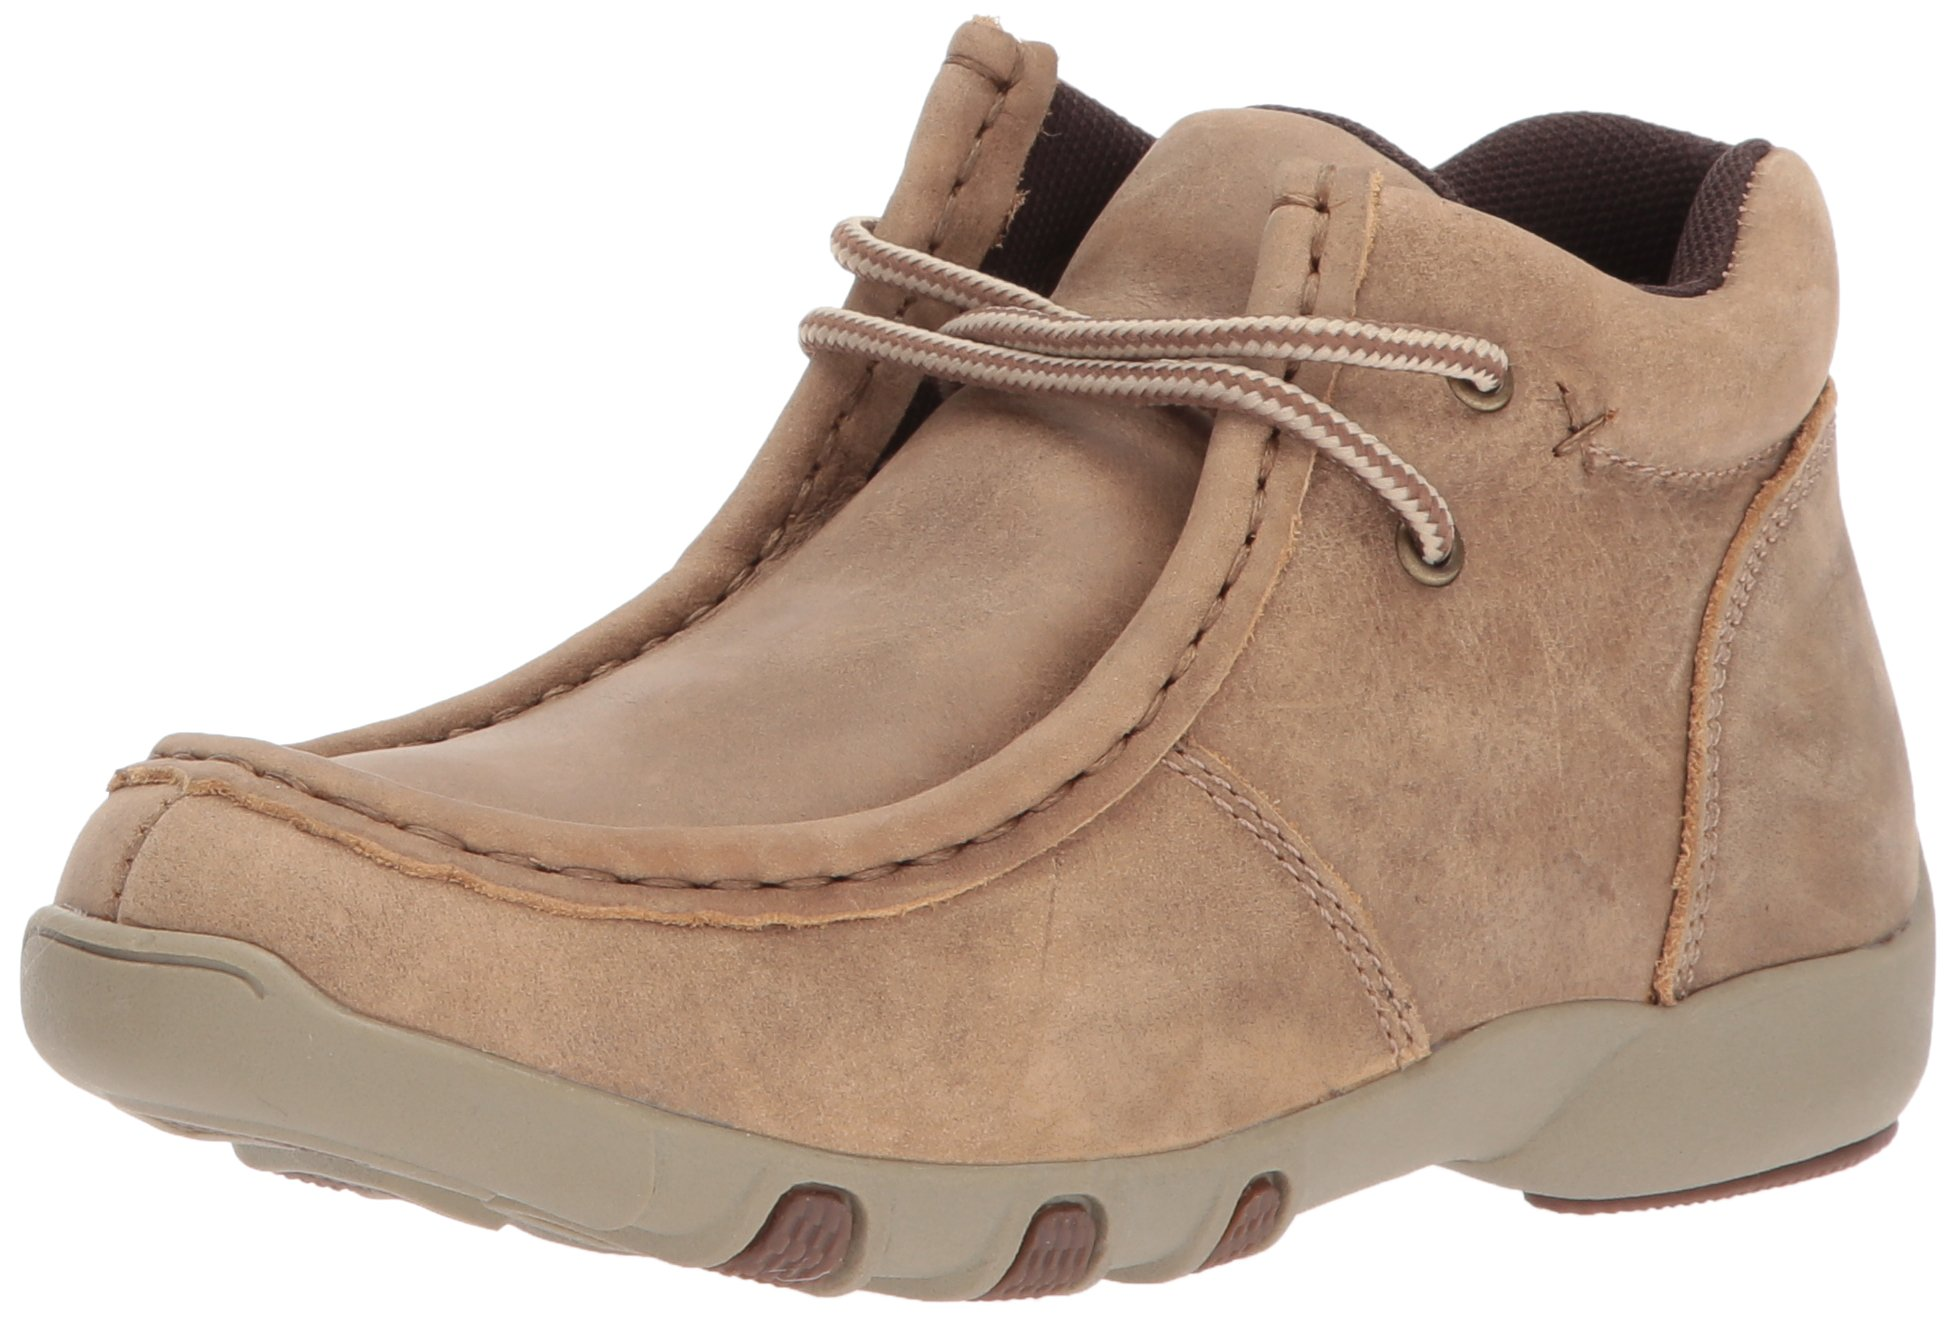 ROPER Boys' Bode, tan, 11 M US Little Kid